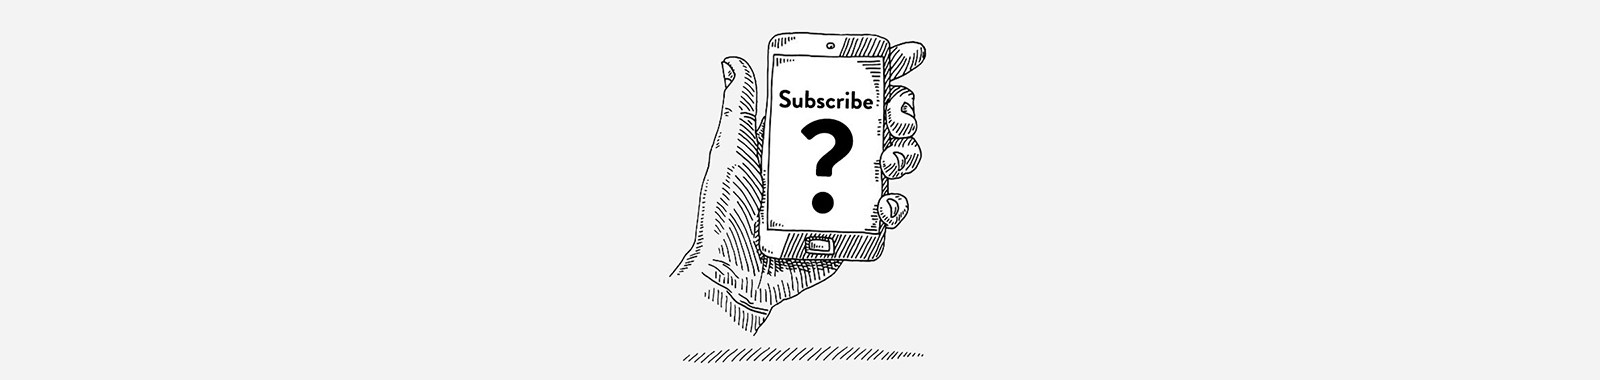 subscribe-mainer-eye